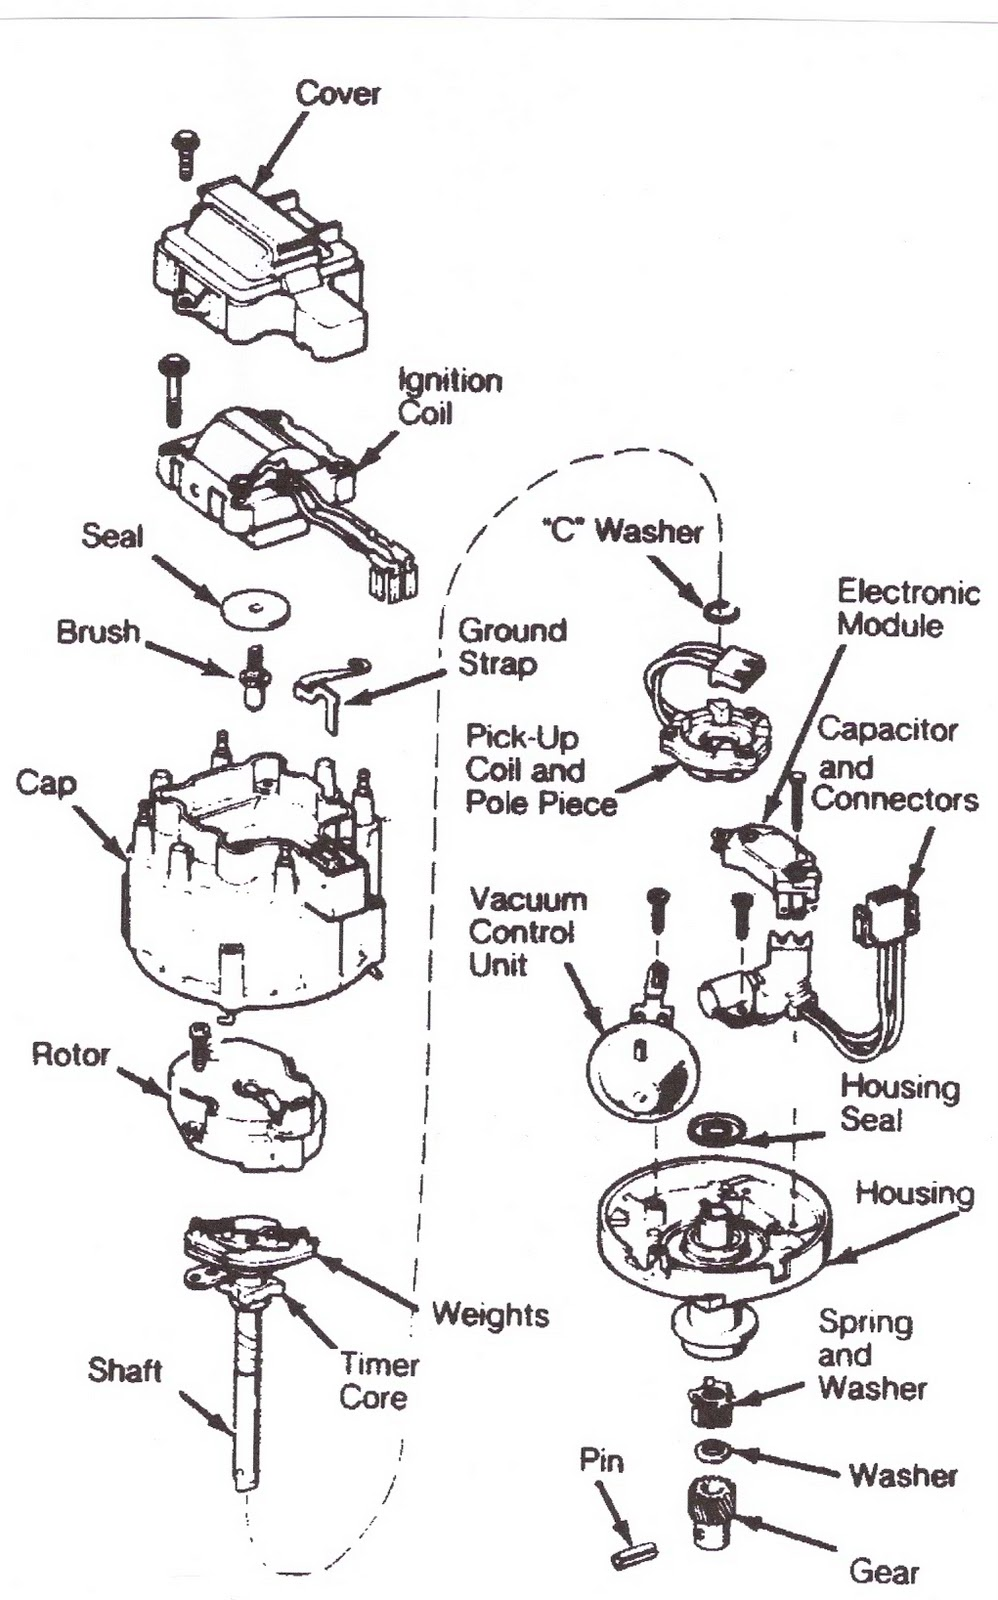 quot Mac s Blog Notes quot Troubleshooting GM s HEI Ignition System